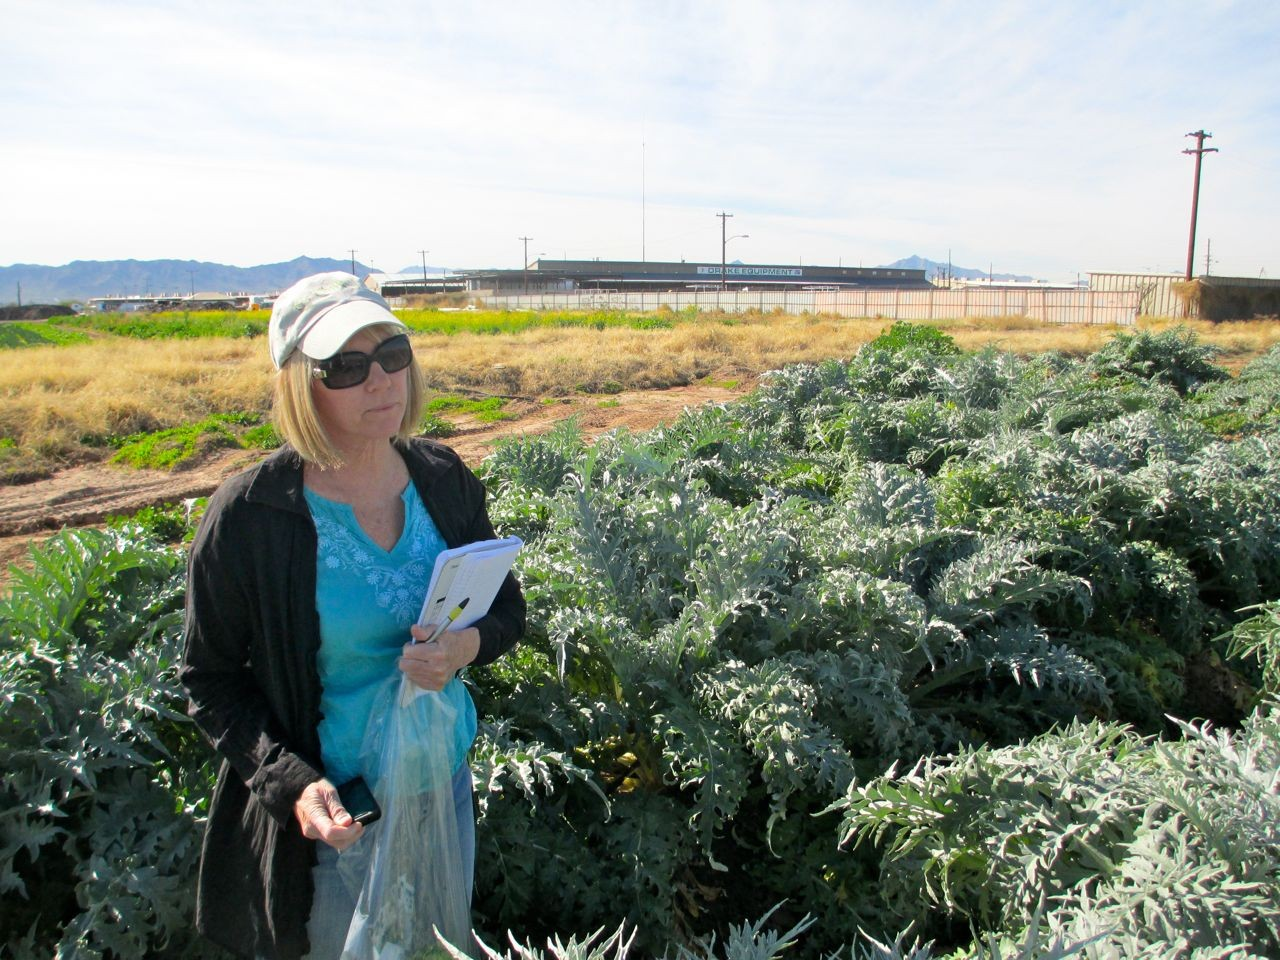 Belinda Amidst the Artichokes